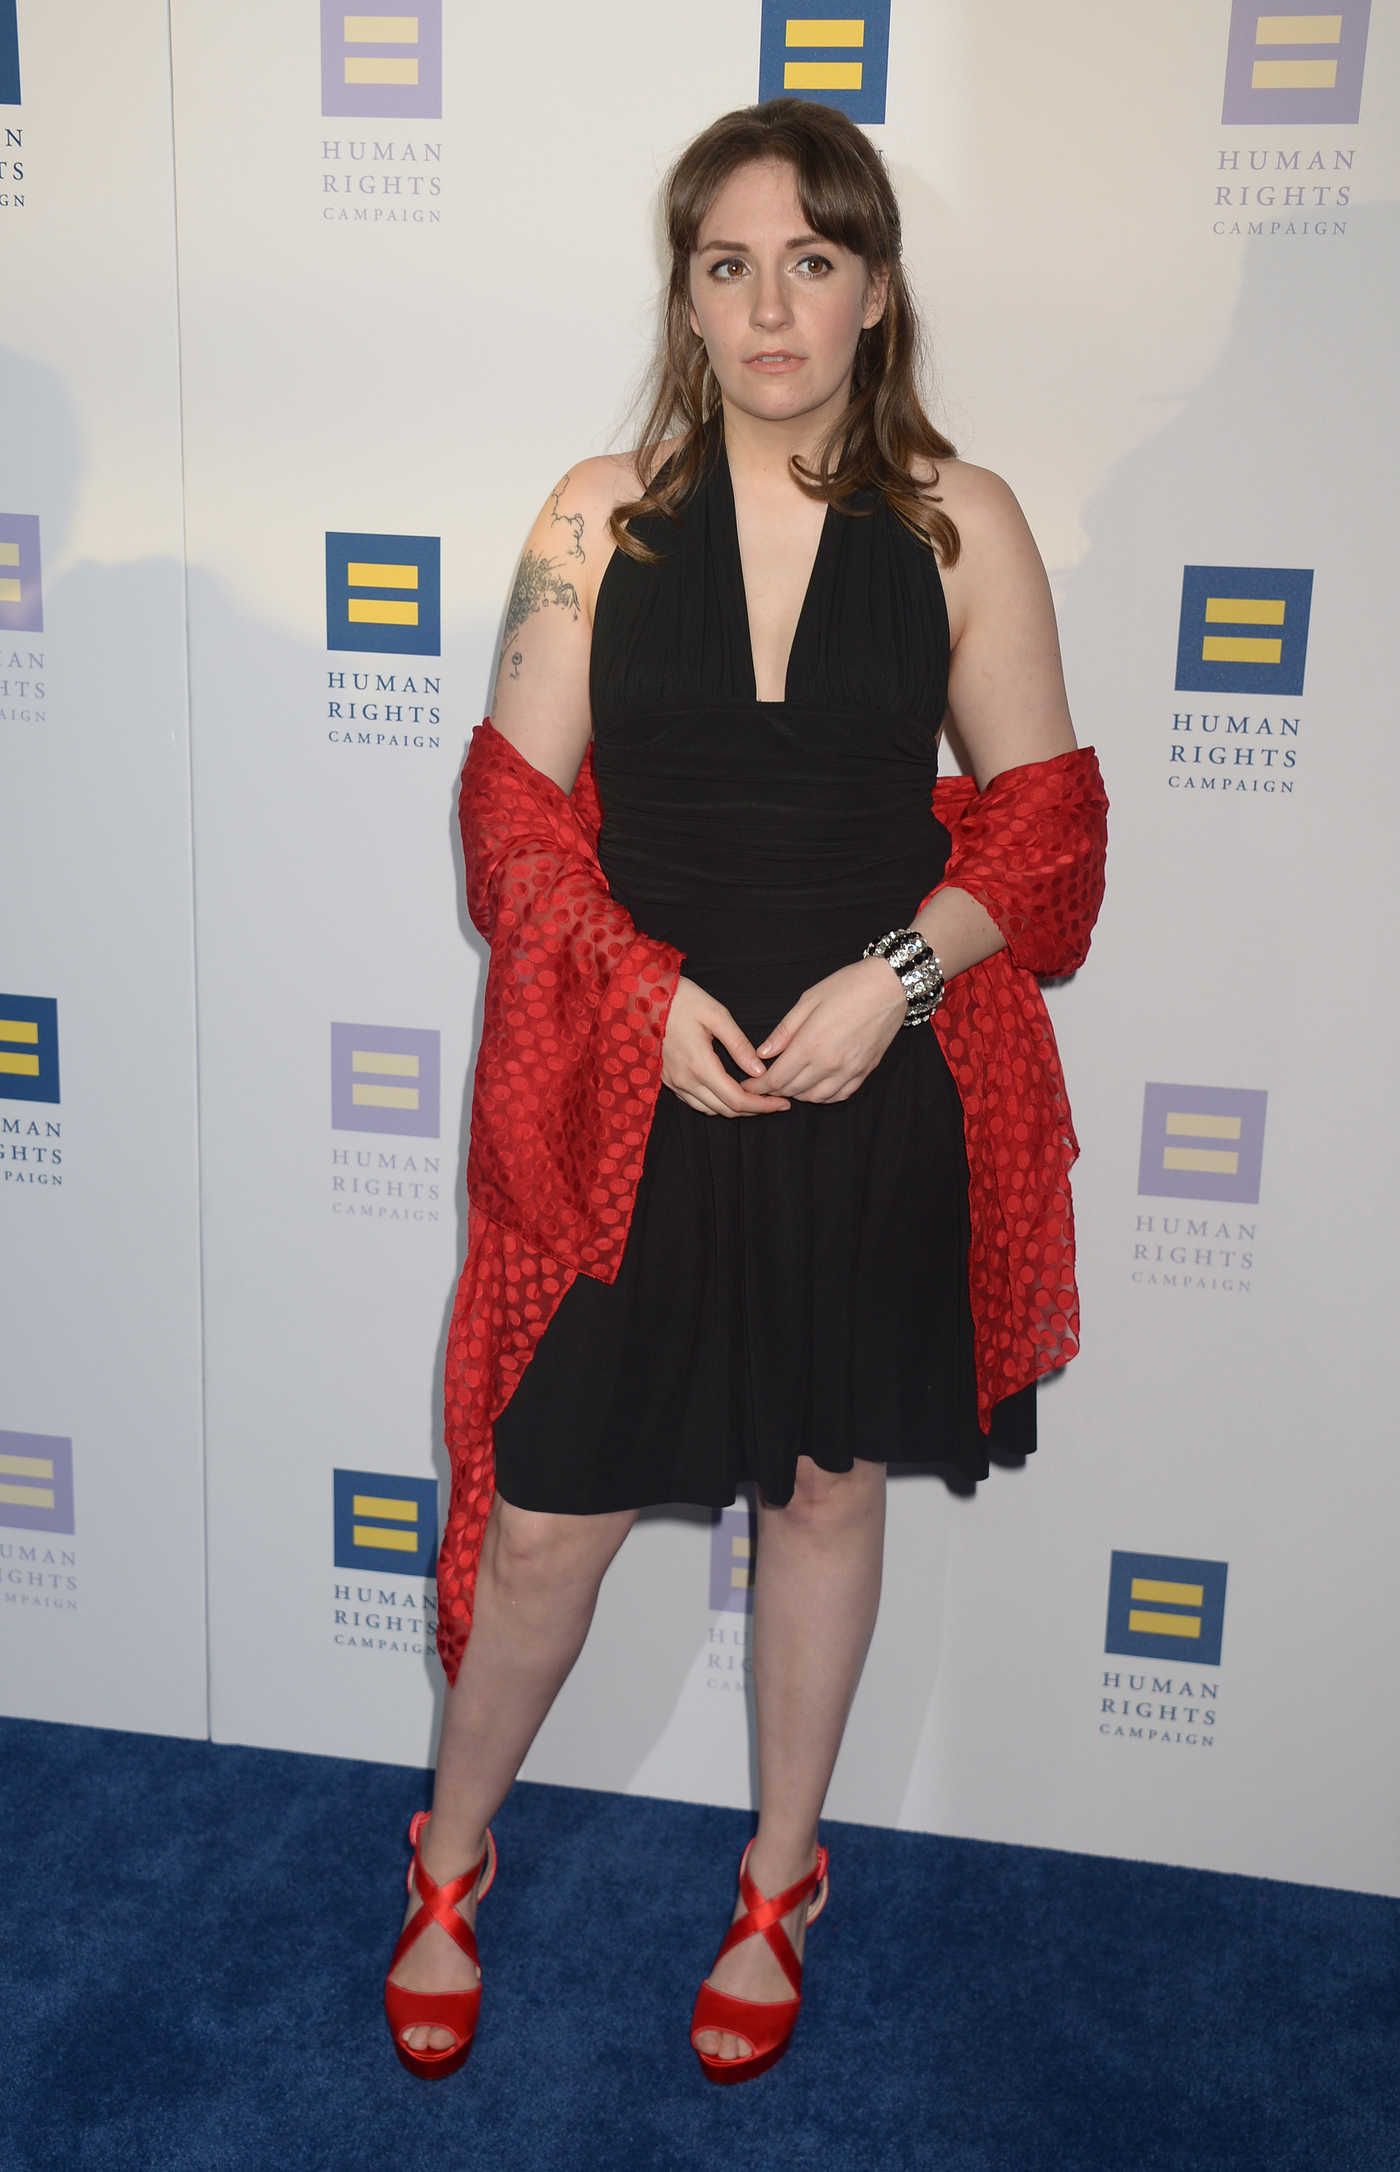 Lena Dunham at the Human Rights Campaign Gala Dinner in Los Angeles 03/18/2017